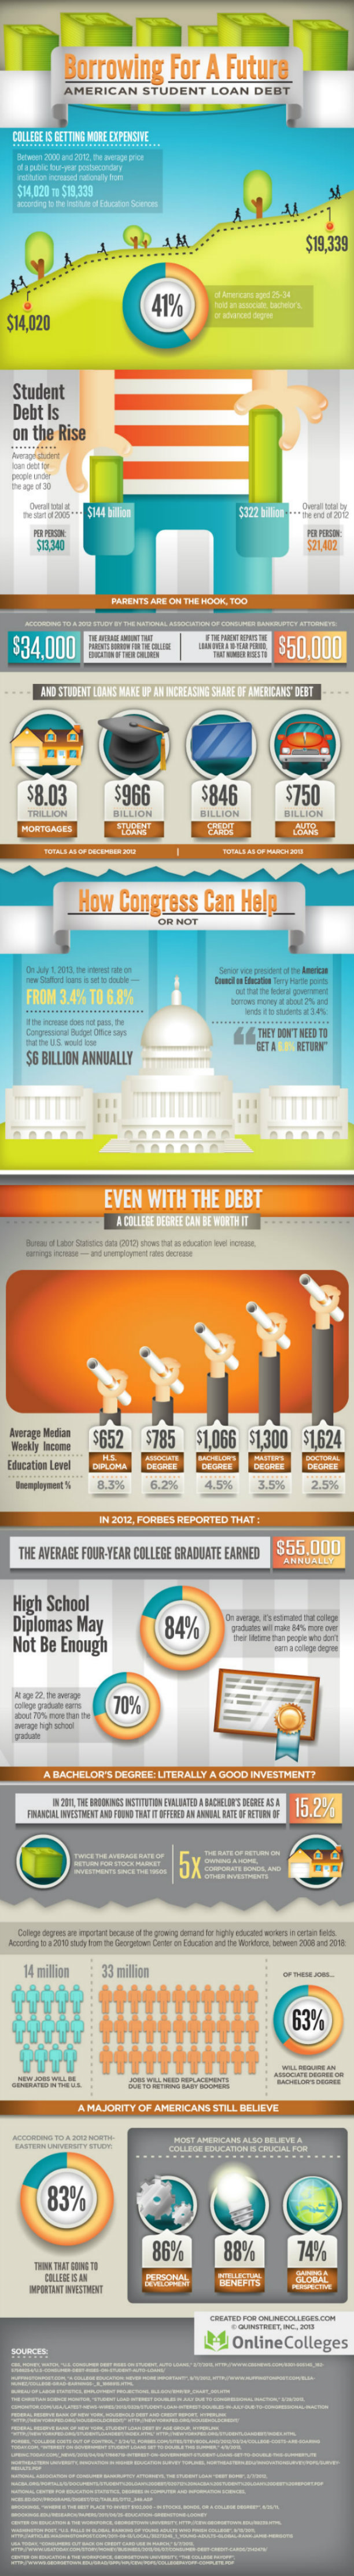 Student-Debt infographic